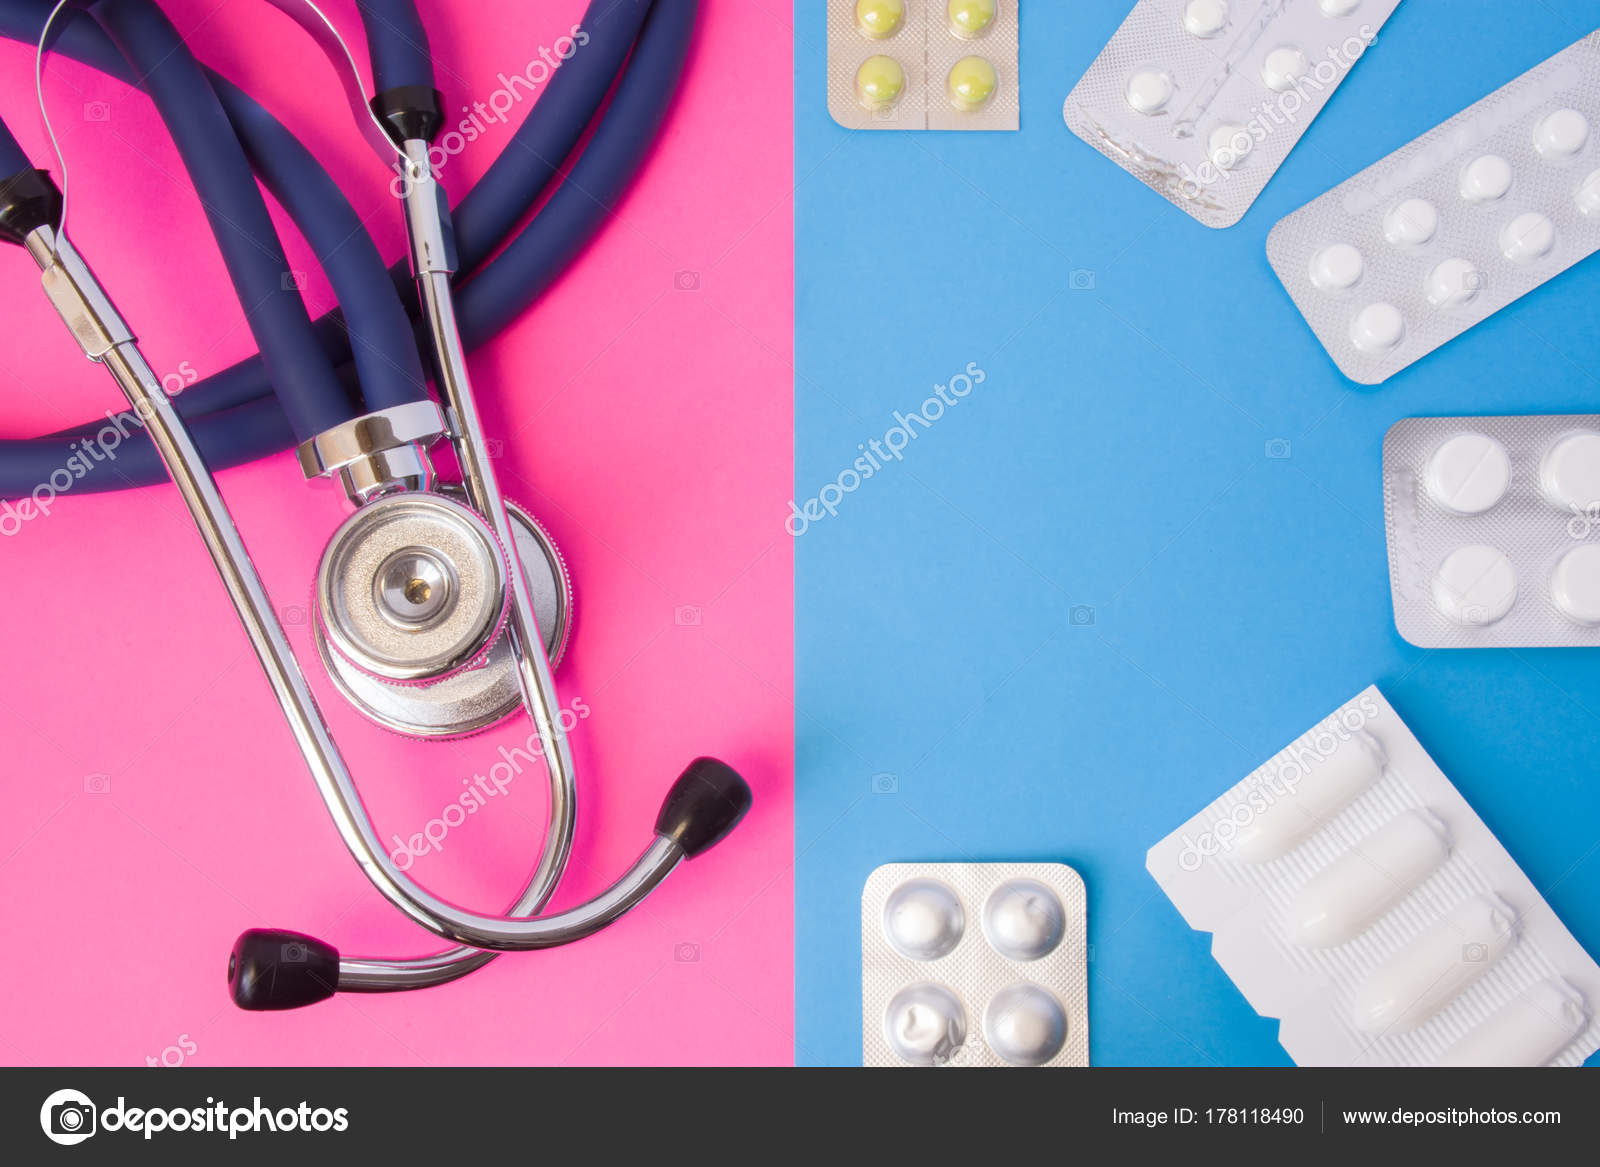 Download ᐈ High Cholesterol Stock Pictures Royalty Free Statin Photos Download On Depositphotos PSD Mockup Templates